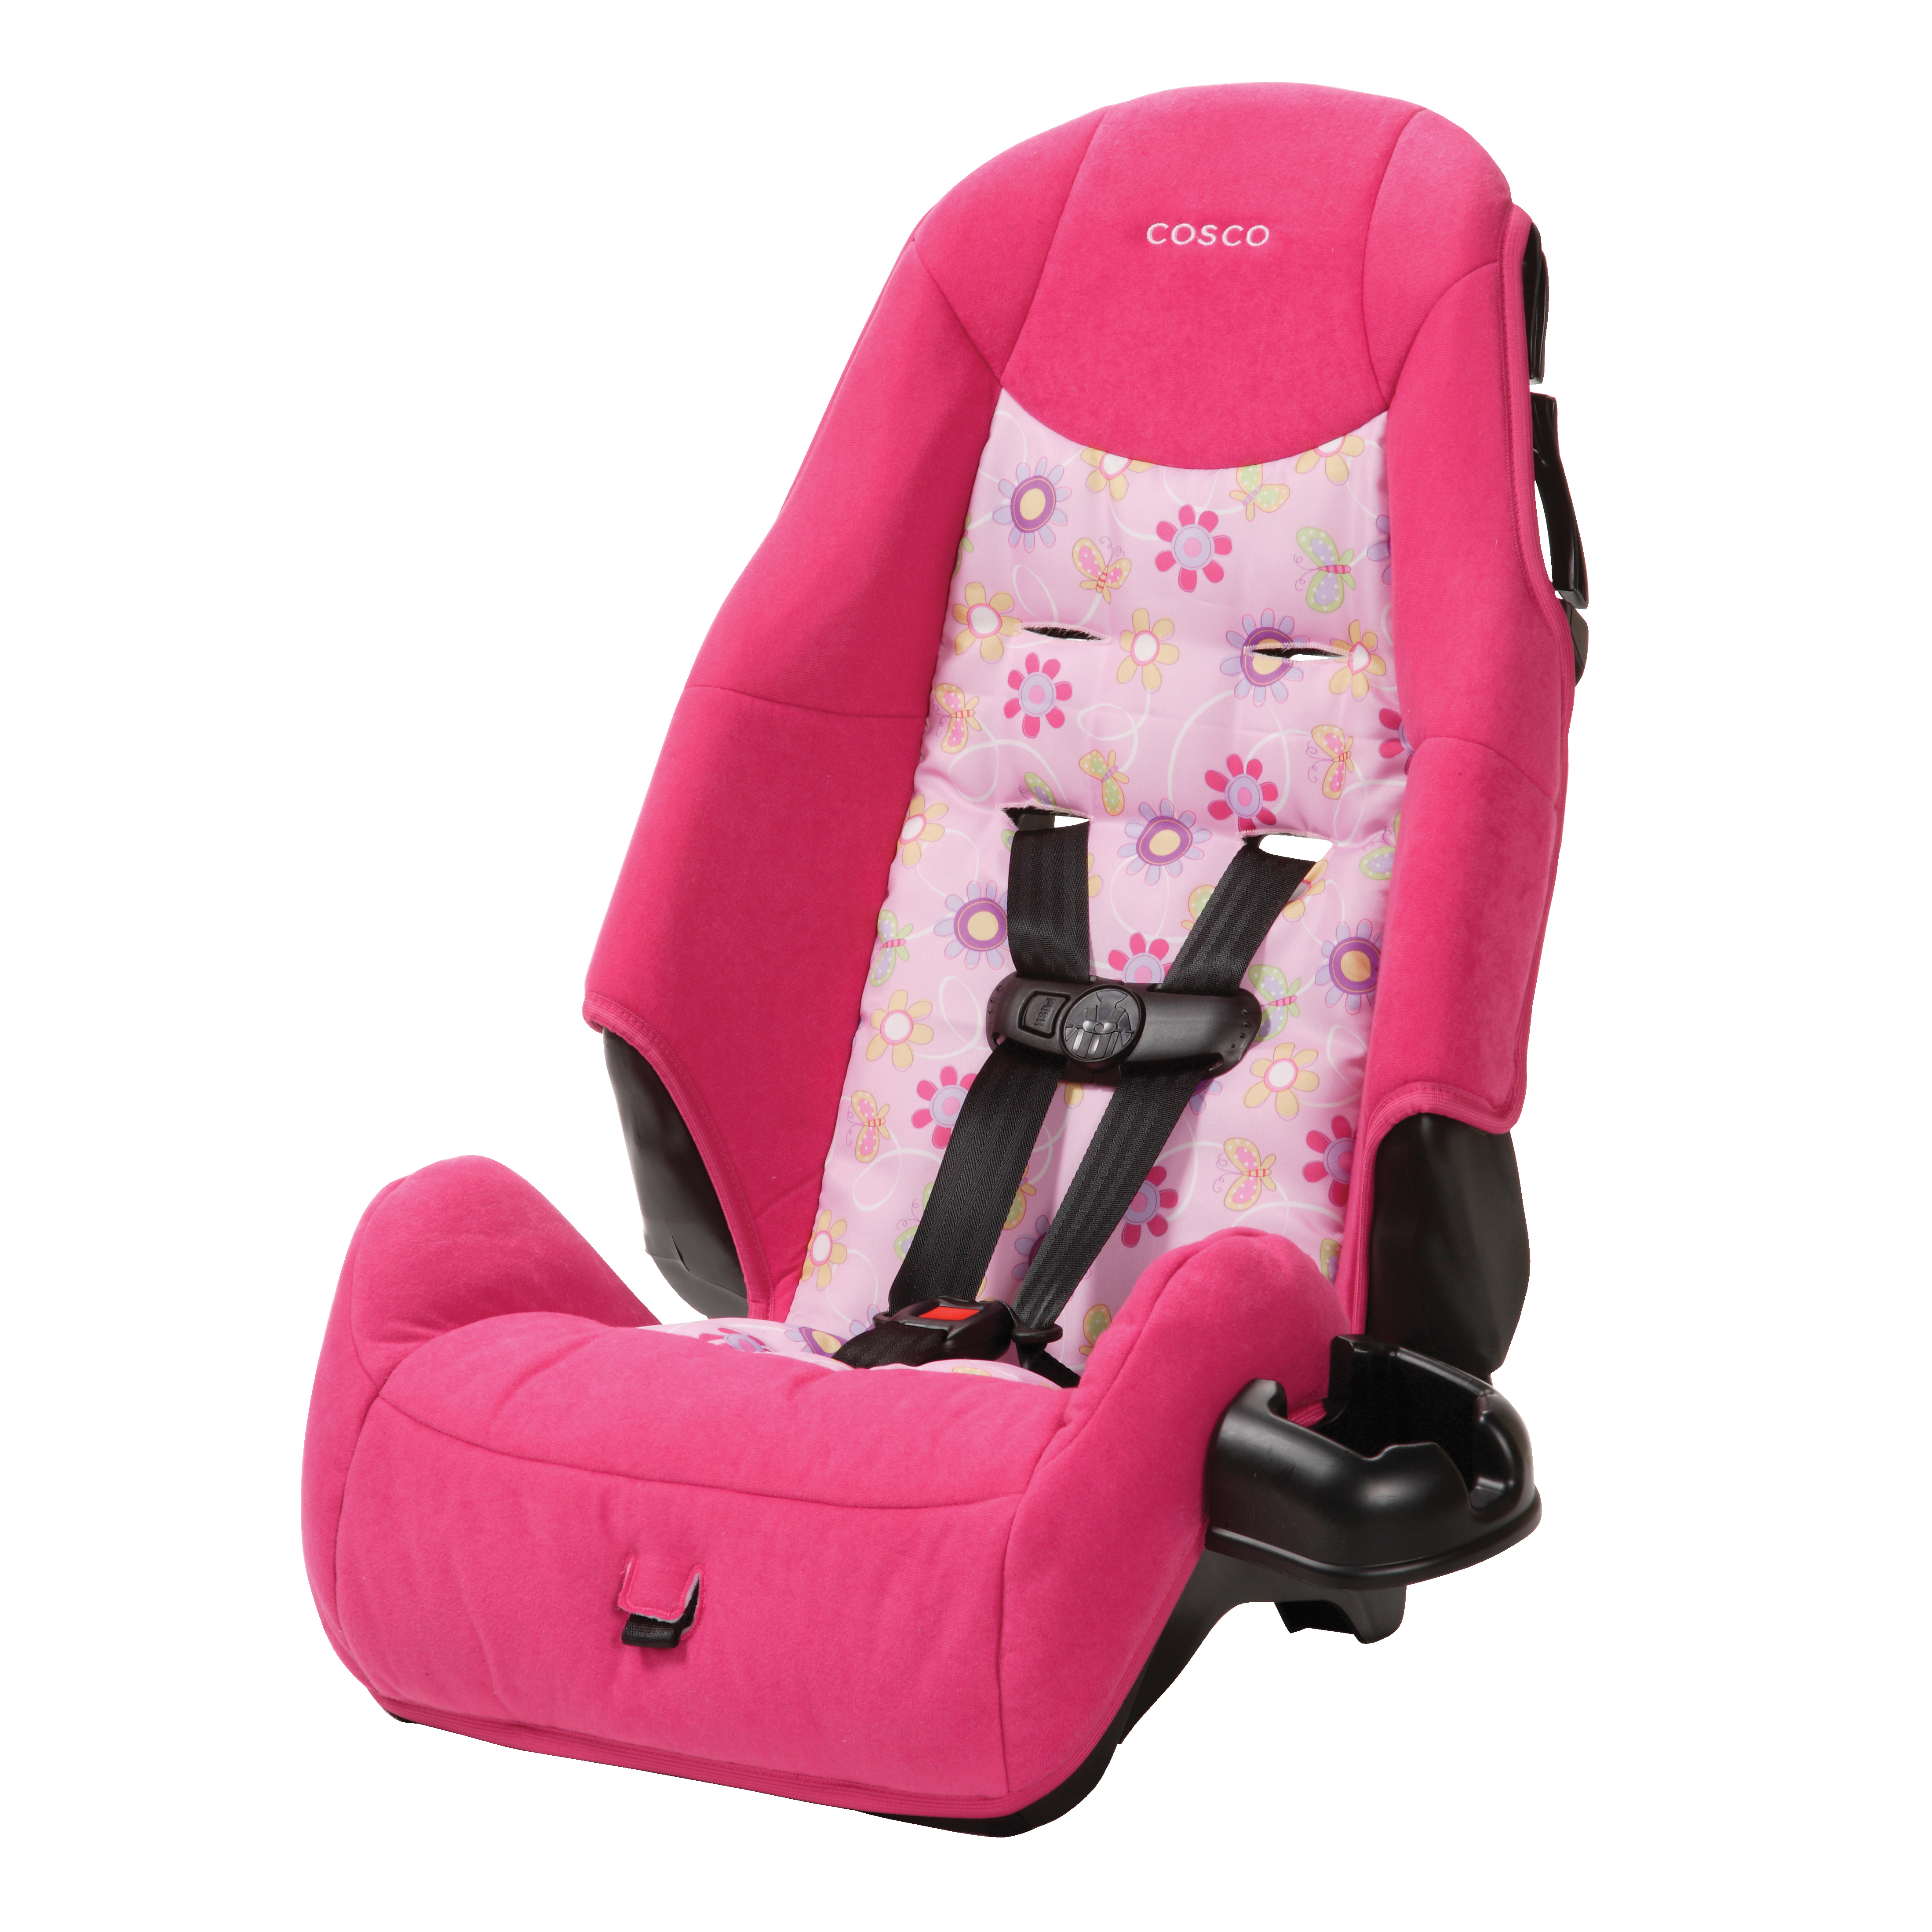 Cosco Highback Booster Car Seat, Pollyana